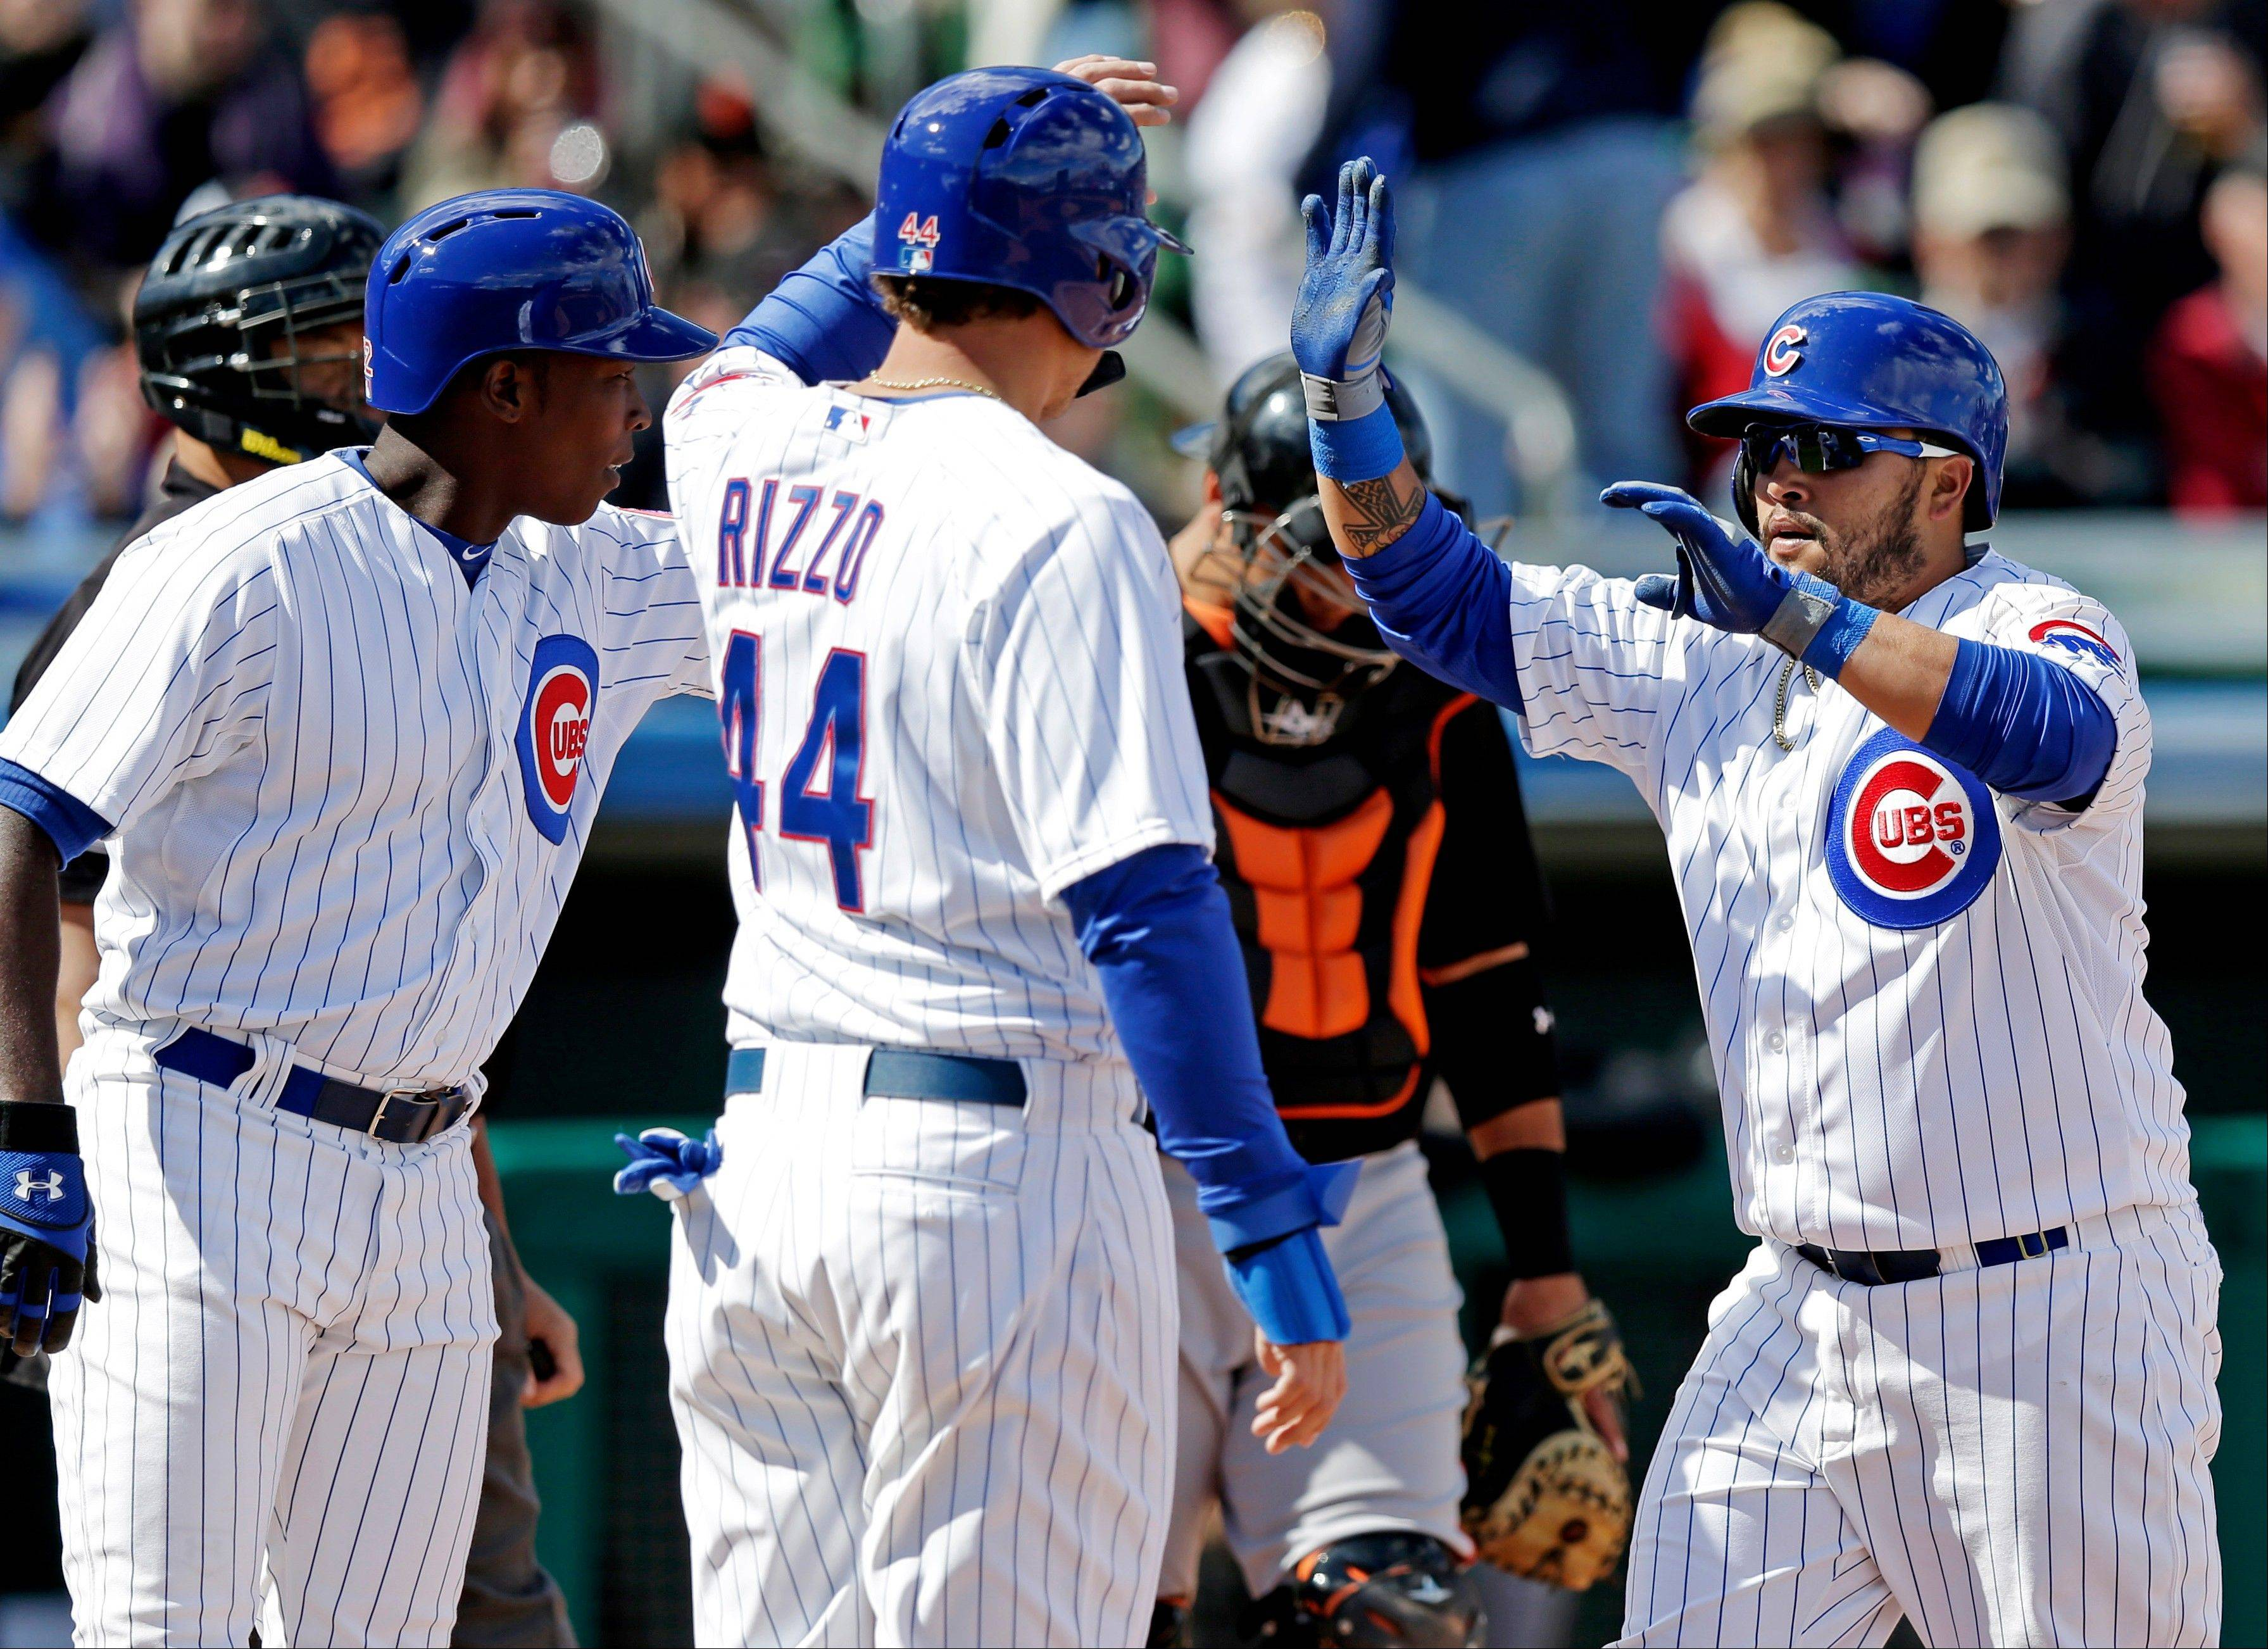 Chicago Cubs' Dioner Navarro, right, is congratulated by Anthony